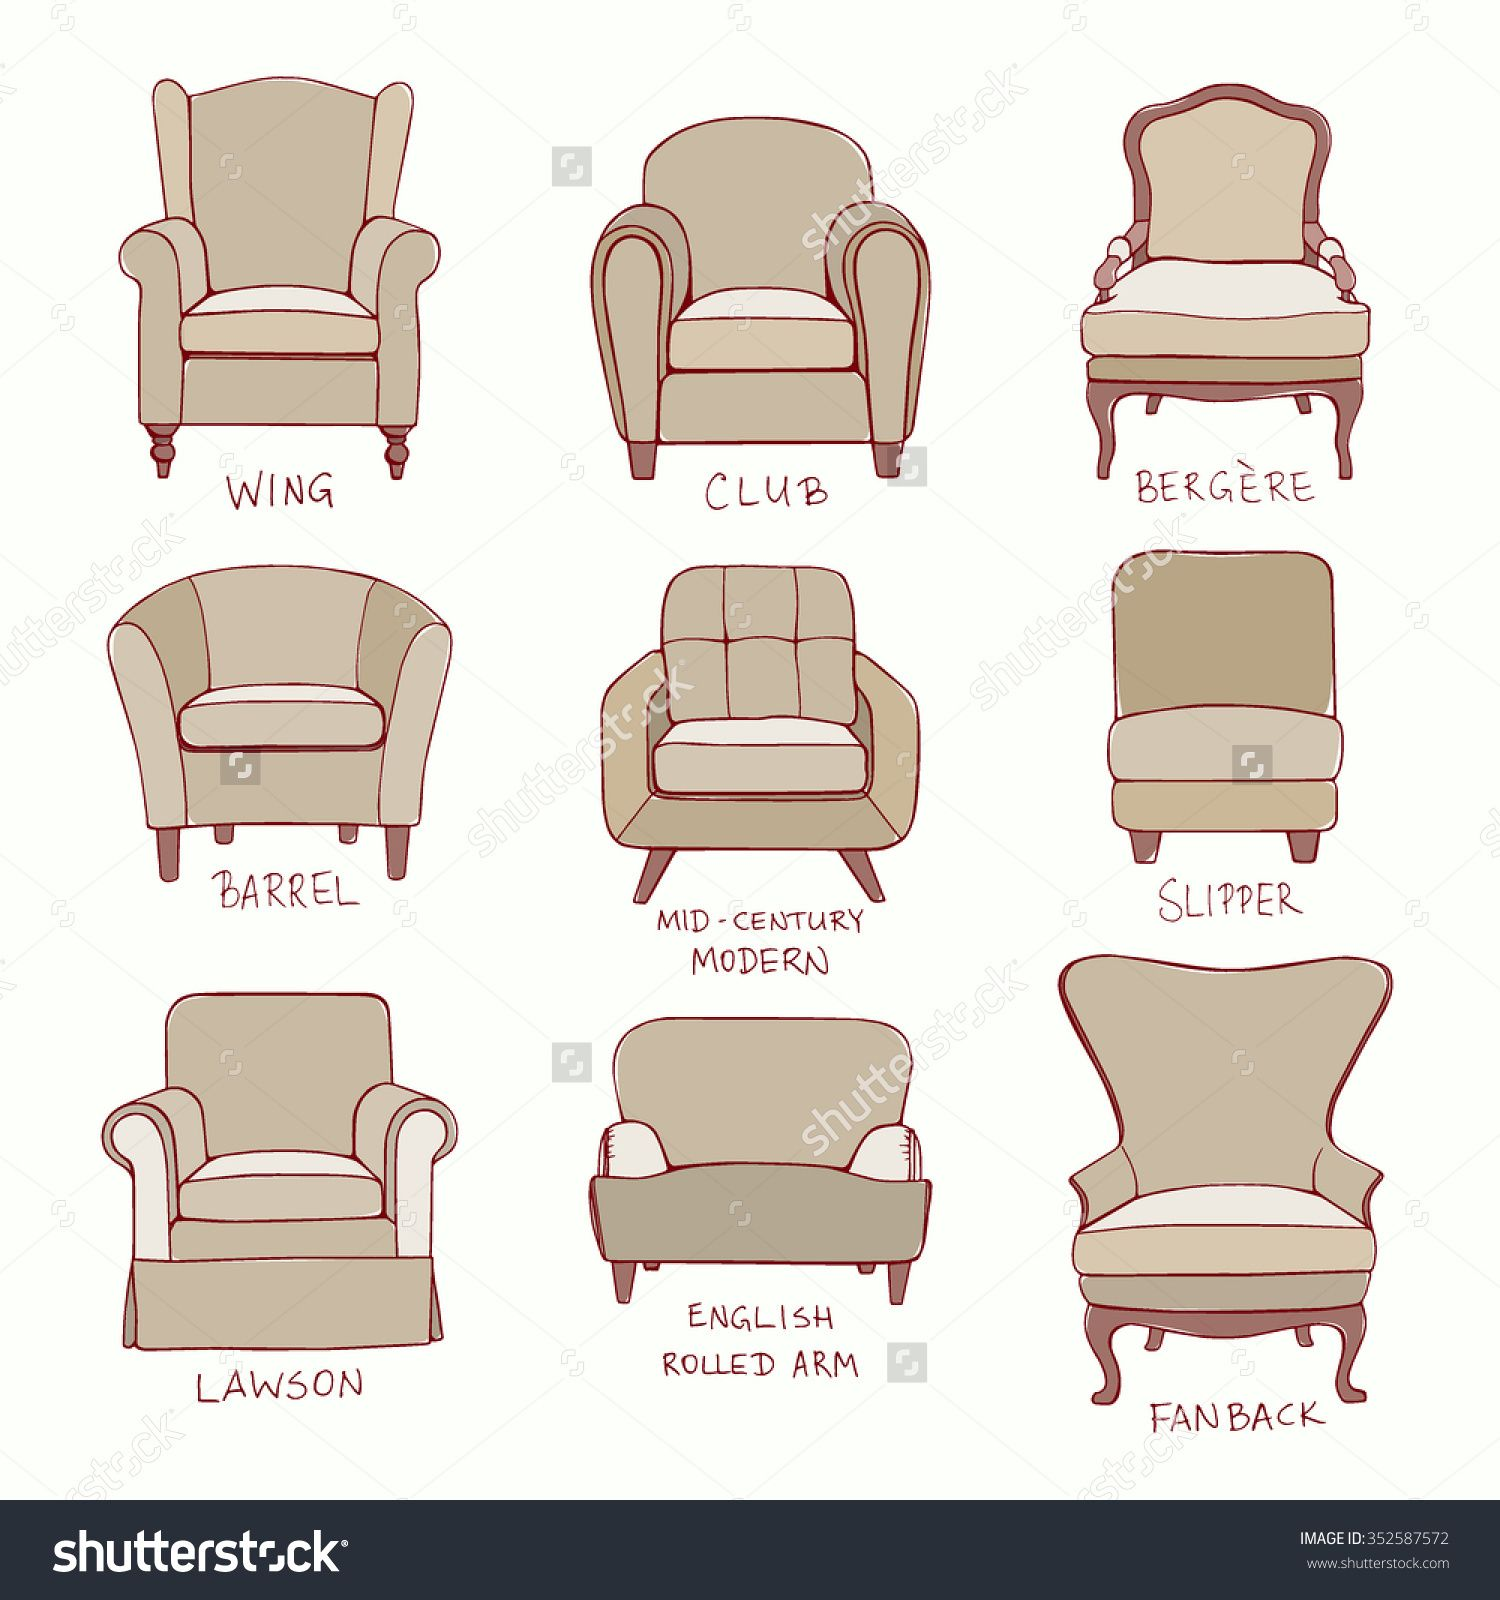 Styles Of Chairs Unique Chair Styles Guide Pictures Vector Visual Guide Of Accent